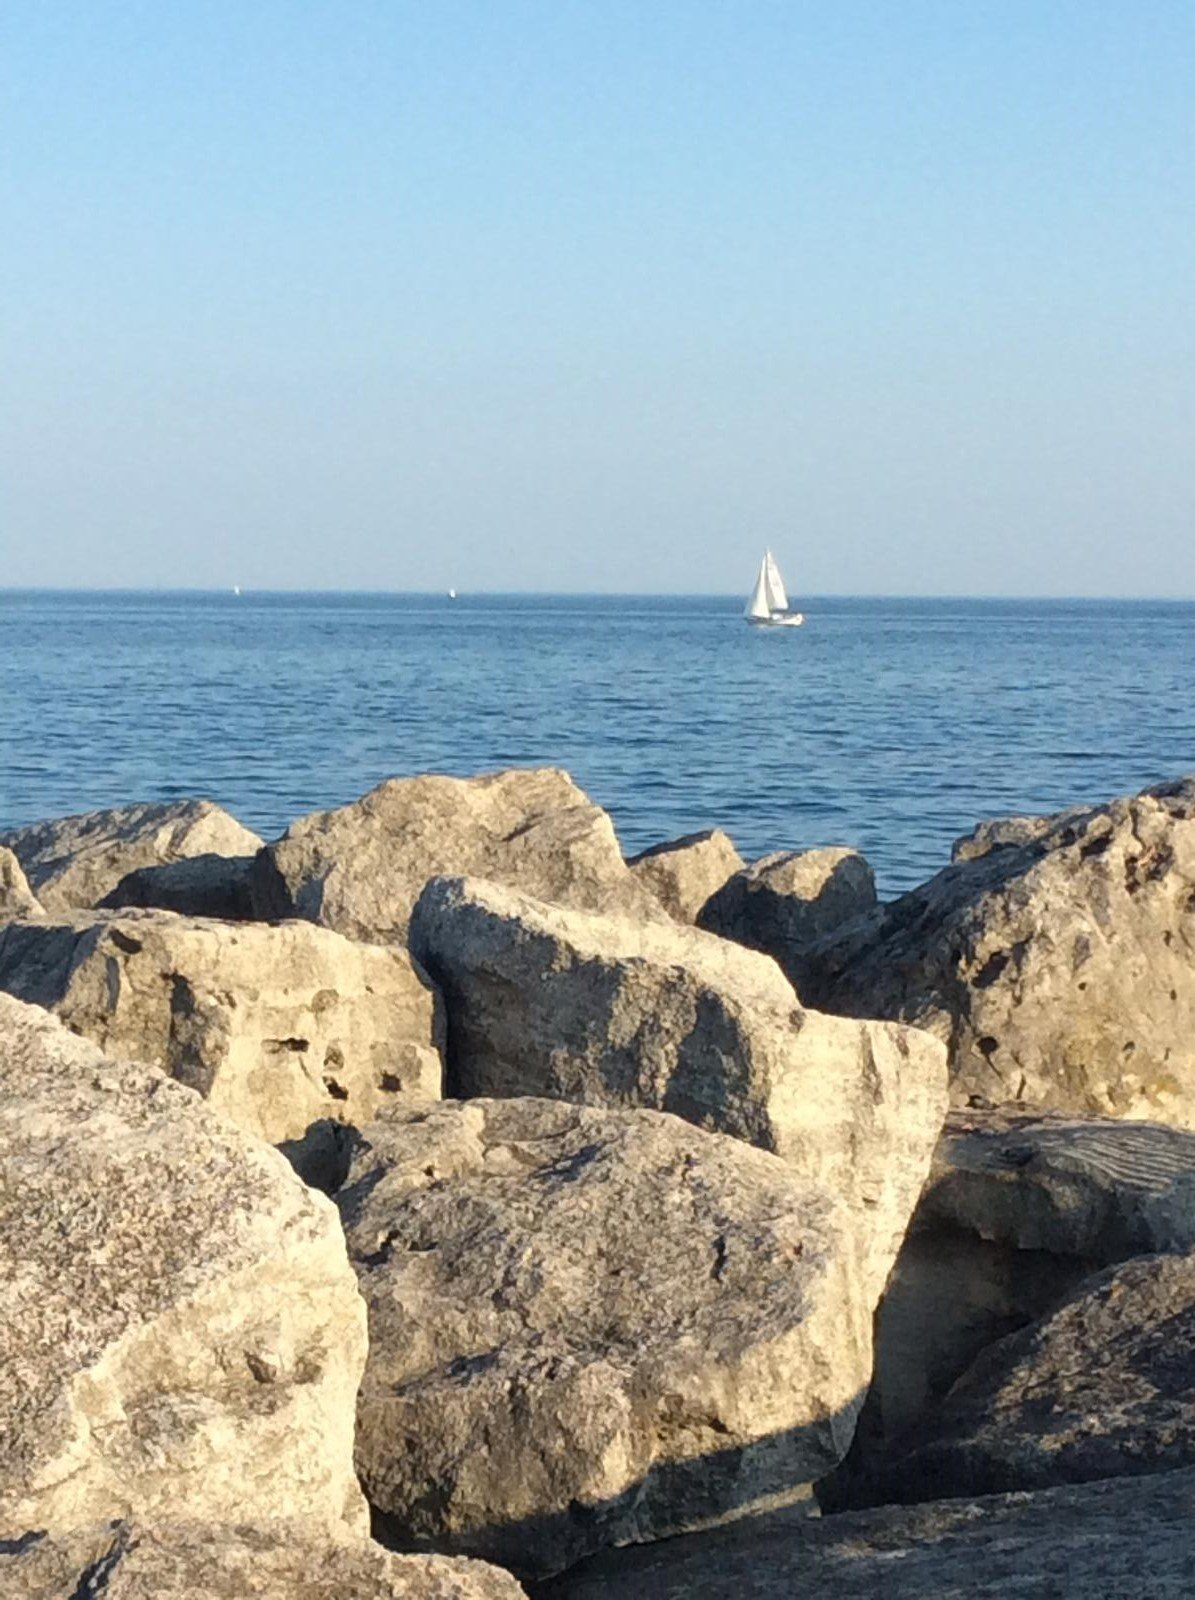 Sailboat in the distance from Bronte Harbour